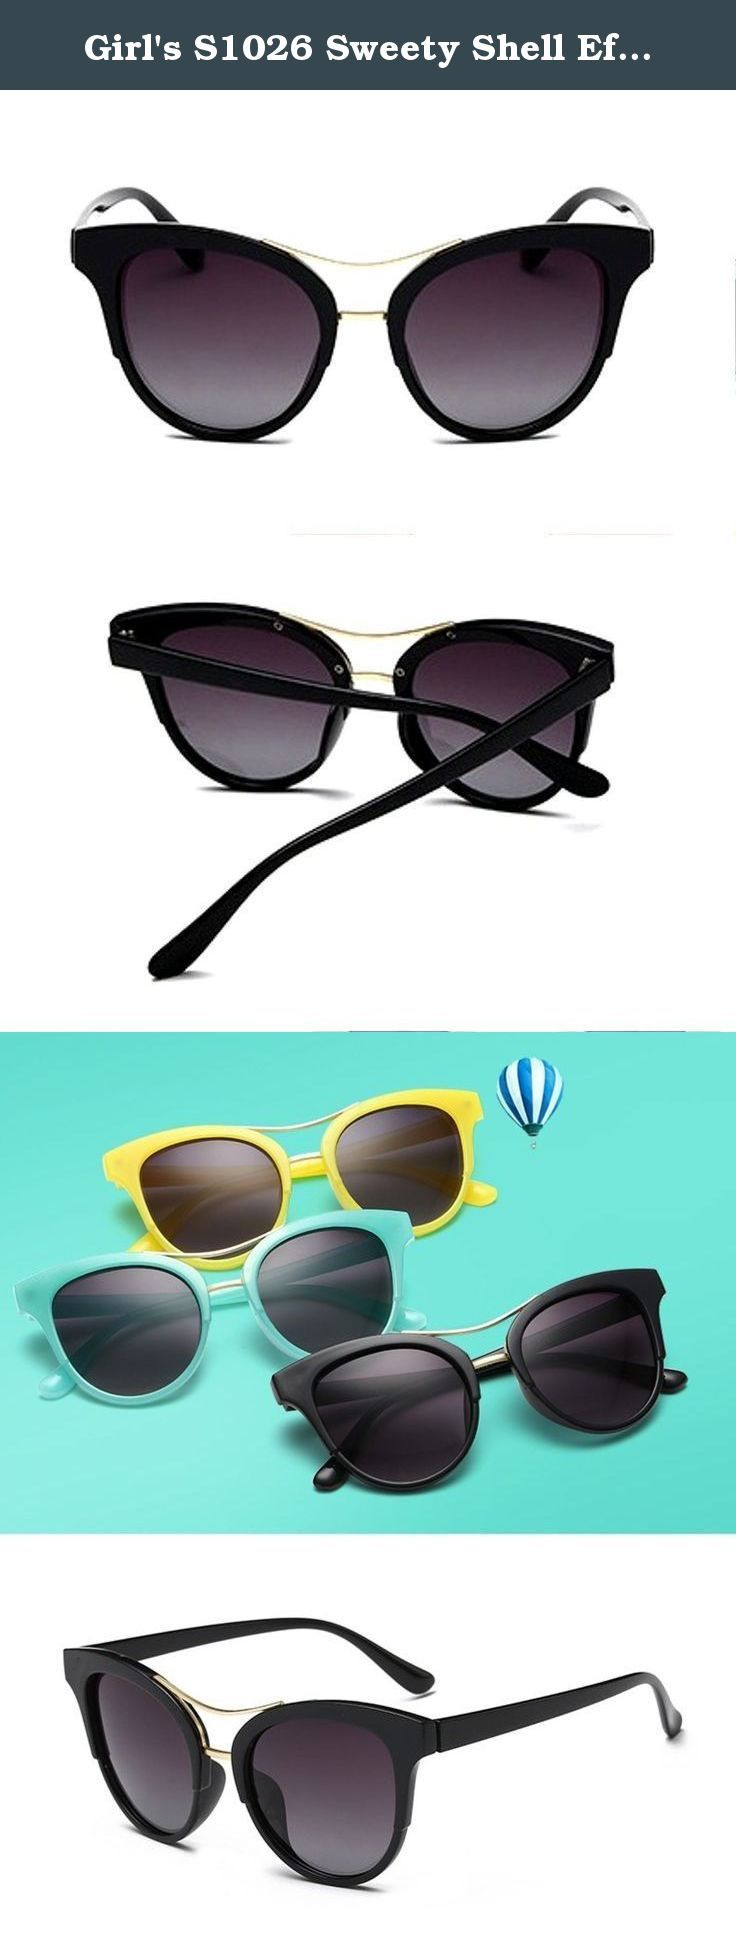 Girl's S1026 Sweety Shell Effect Acetate Frame Cat-eye Polarized Sunglasses (black, 0). Gorgeous and fashionable, flocked cat-eye kid's sunglasses with large lenses and a sweety semi-transparent colour. These are true optical quality sunglasses for children with full UV400 protection at a very affordable price. Polarized lenses reduce 99% of visible glare from water, snow, sand and pavement for increased visual acuity and decreased eye strain. Polycarbonate lenses are 20 times more impact...